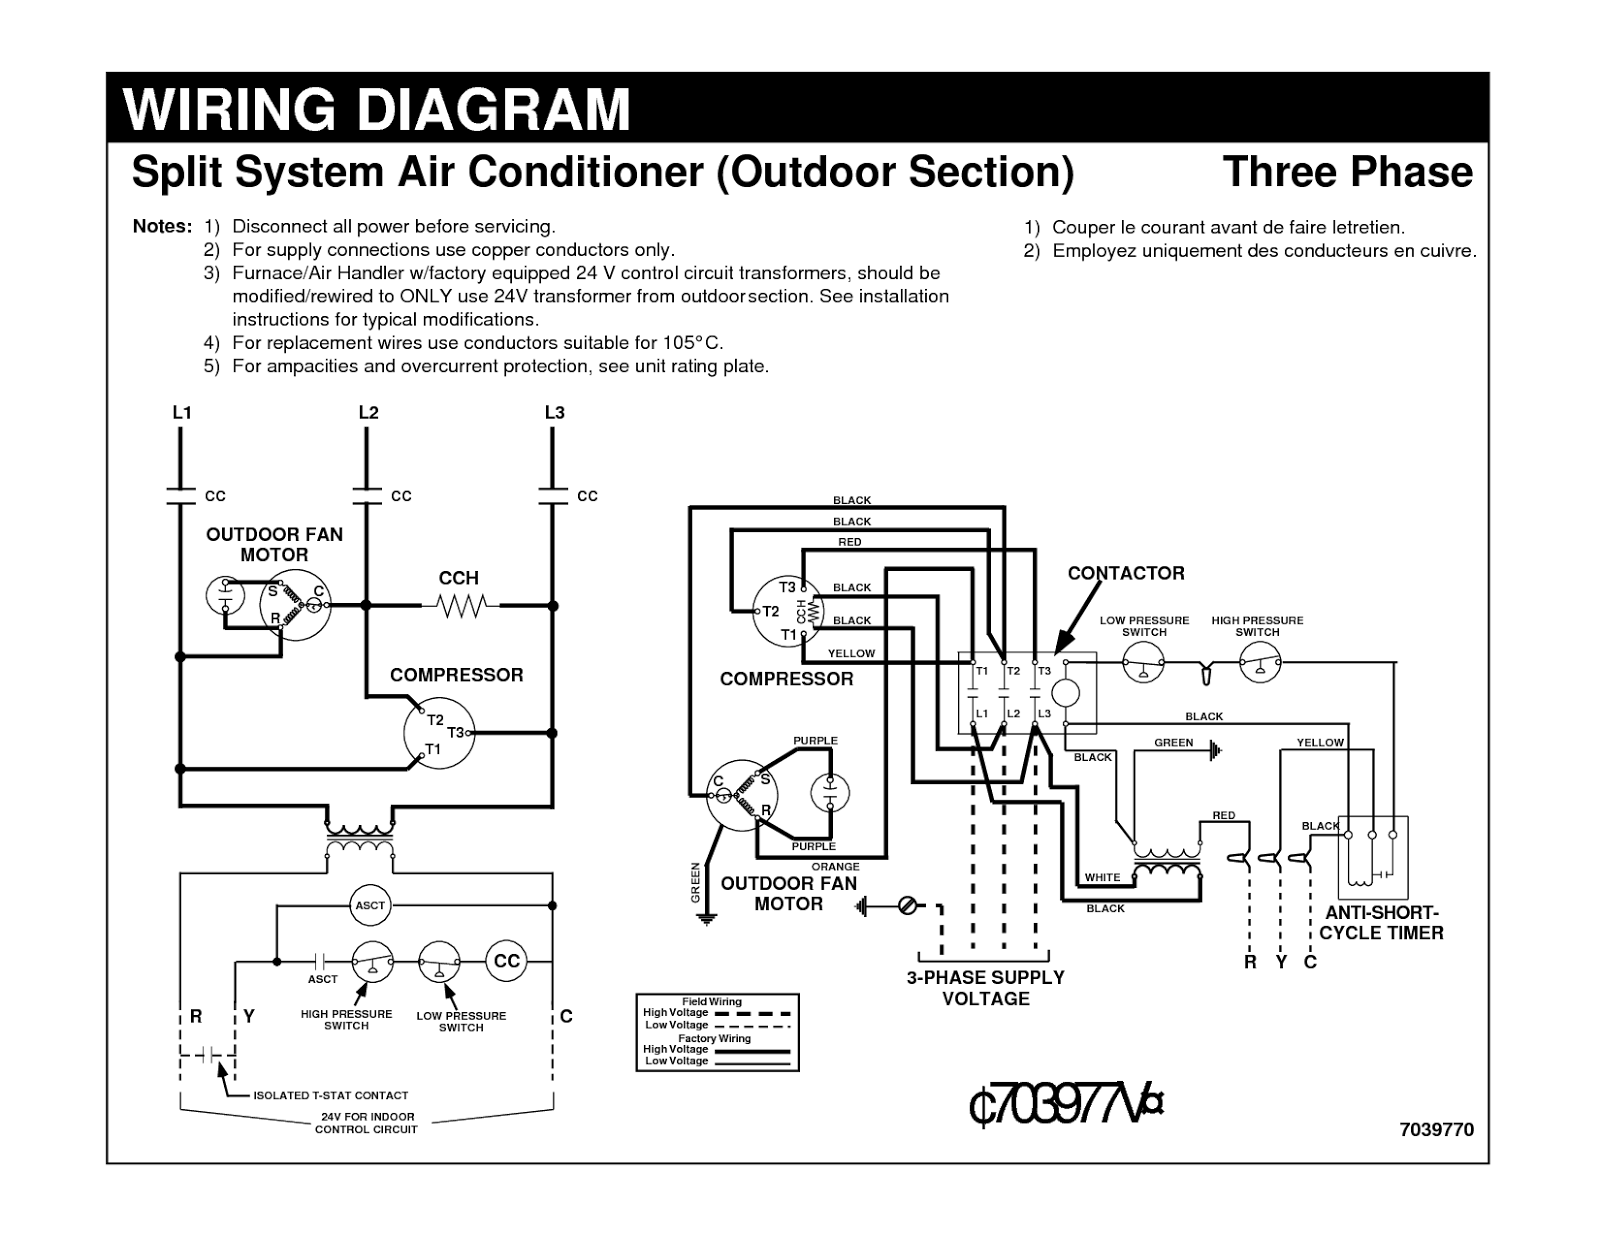 wiring diagrams air conditioners 6 9 asyaunited de \u2022 mitsubishi electric air conditioner wiring diagram electrical wiring diagrams for air conditioning systems part one rh electrical knowhow com wiring diagram air conditioner compressor goodman wiring diagram